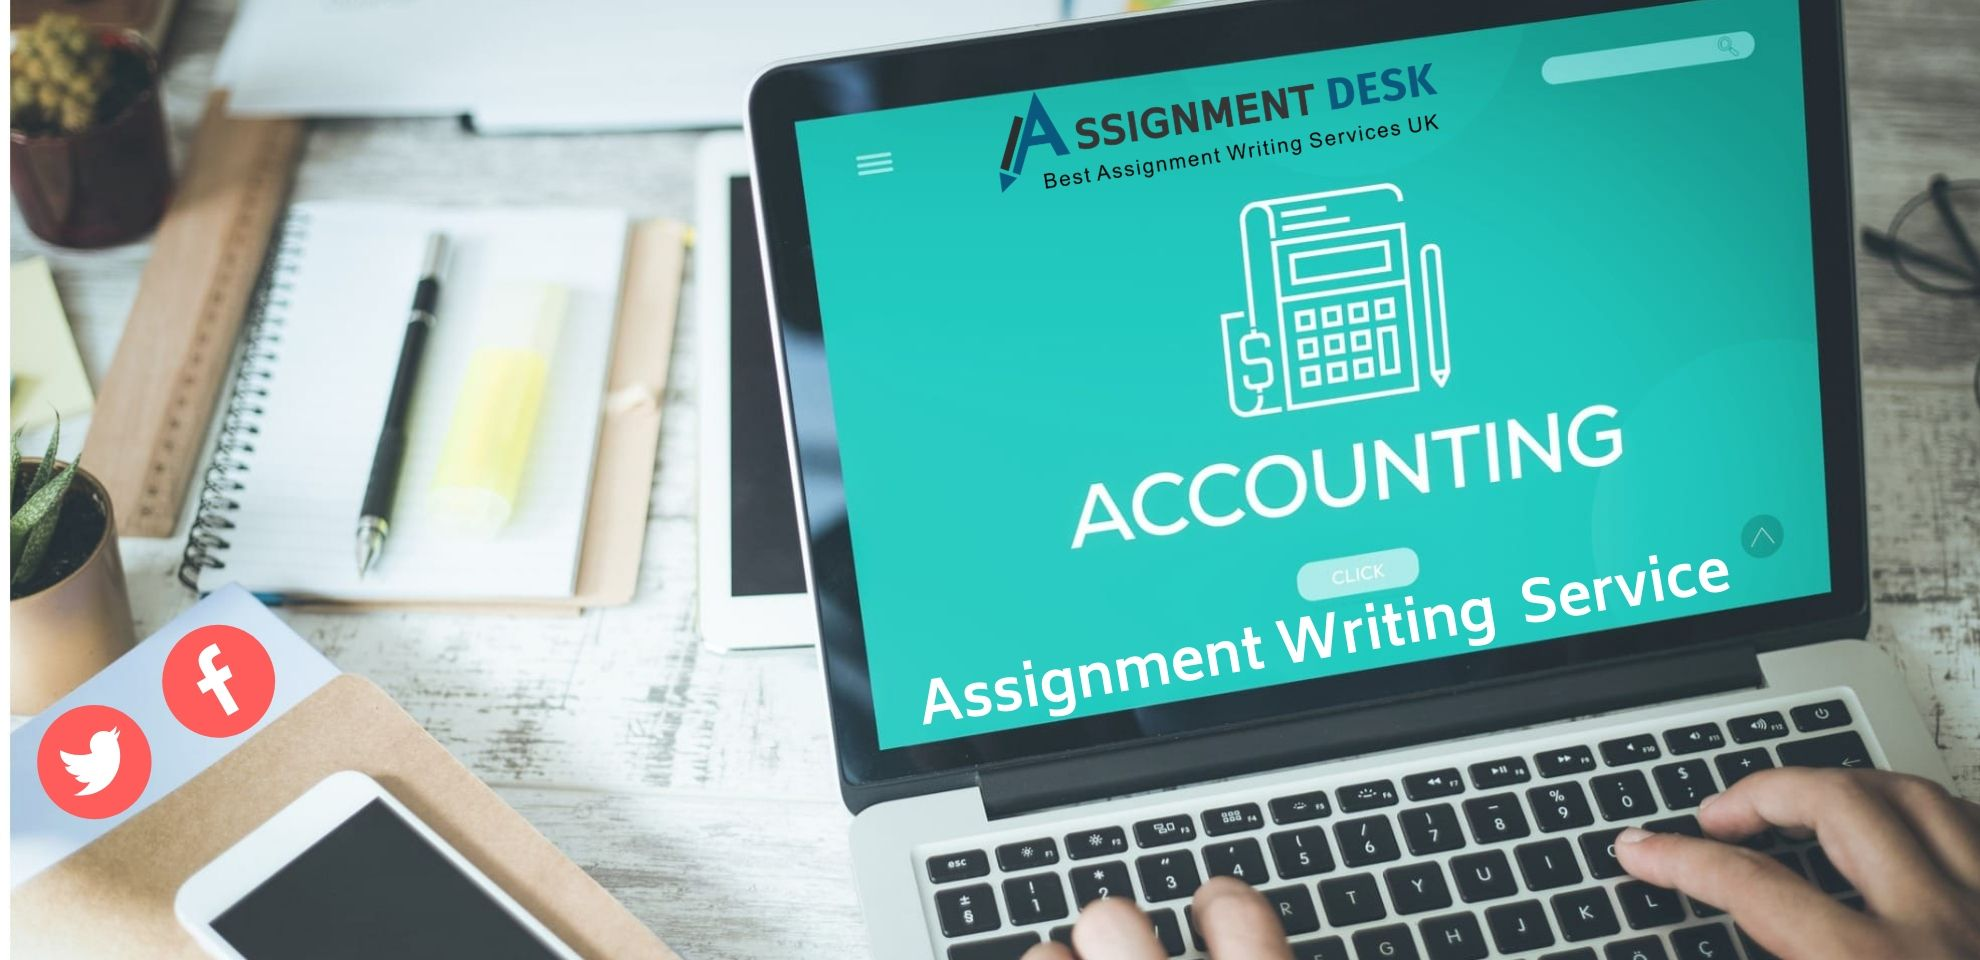 Accounting Assignment Help  Assignment Subjects  Accounting Writing Are You Searching For Online Accounting Assignment Help  Our Experts Of  Assignment Desk Provide Best